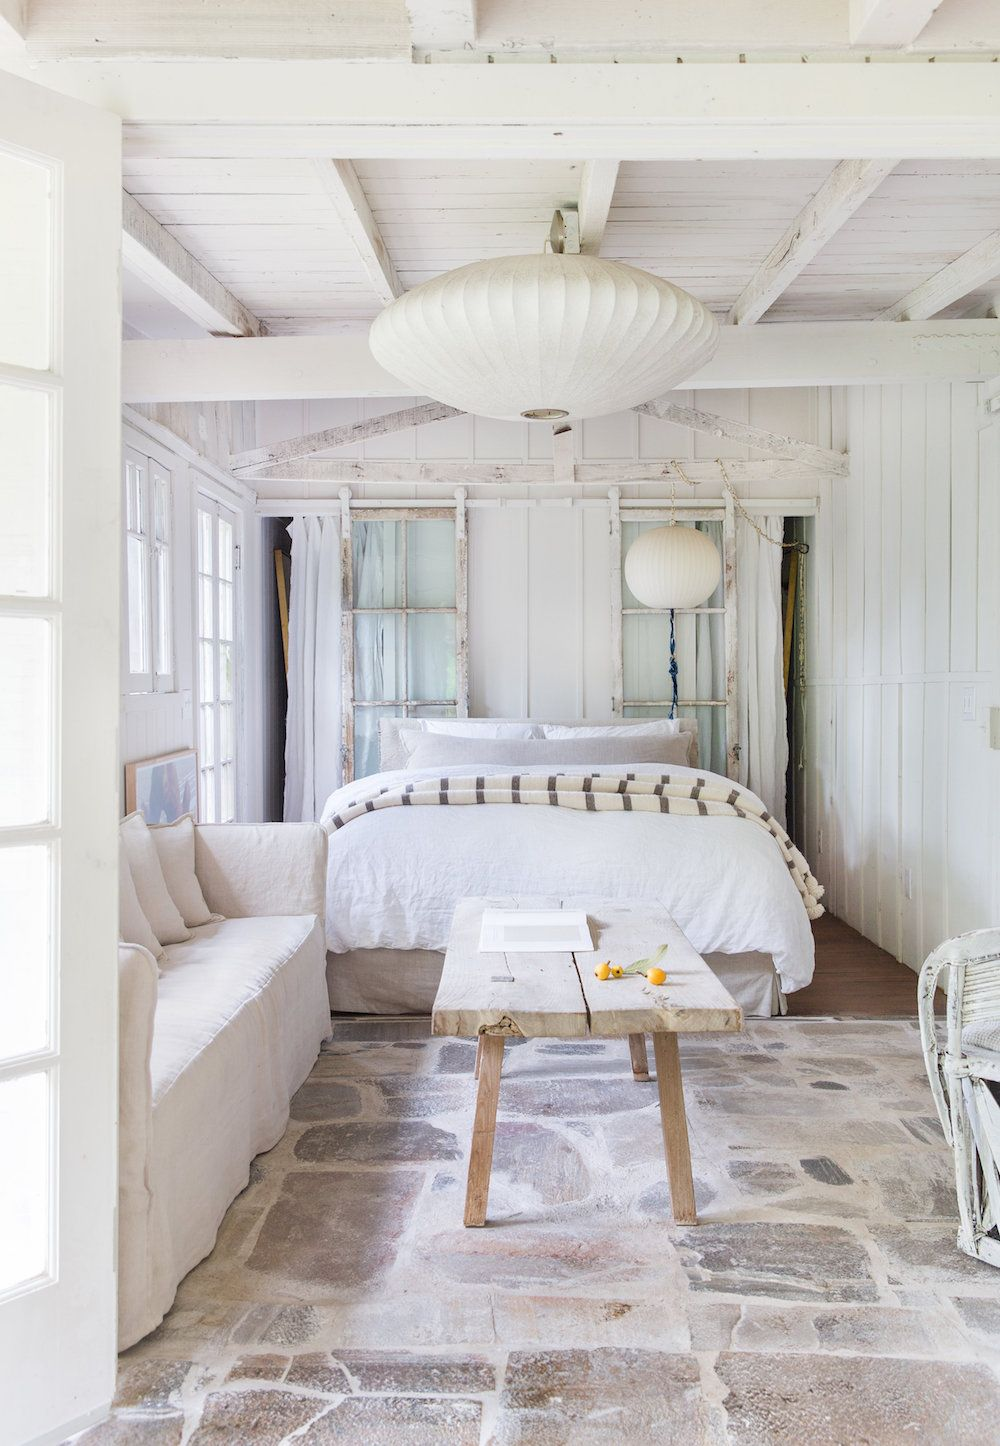 10 Best Shabby Chic Bedrooms - Modern Shabby Chic Decorating Ideas